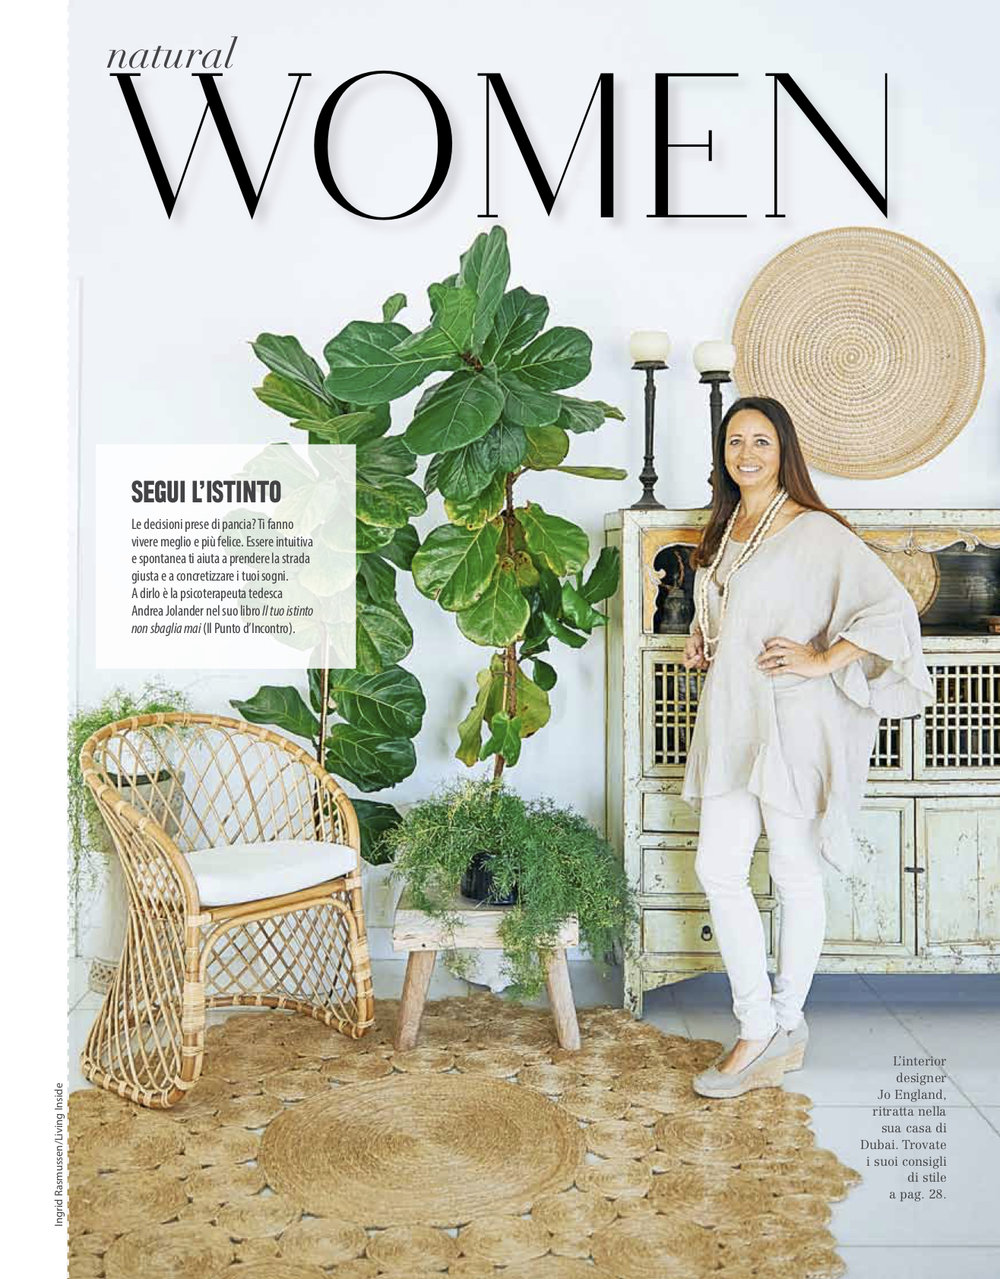 """<span style=""""font-family:Helvetica;letter-spacing:2px;font-size:10px;color:rgba(28,28,28,0.8)""""><b>NATURAL WOMEN</b></span><br><i>june 2018</i>"""